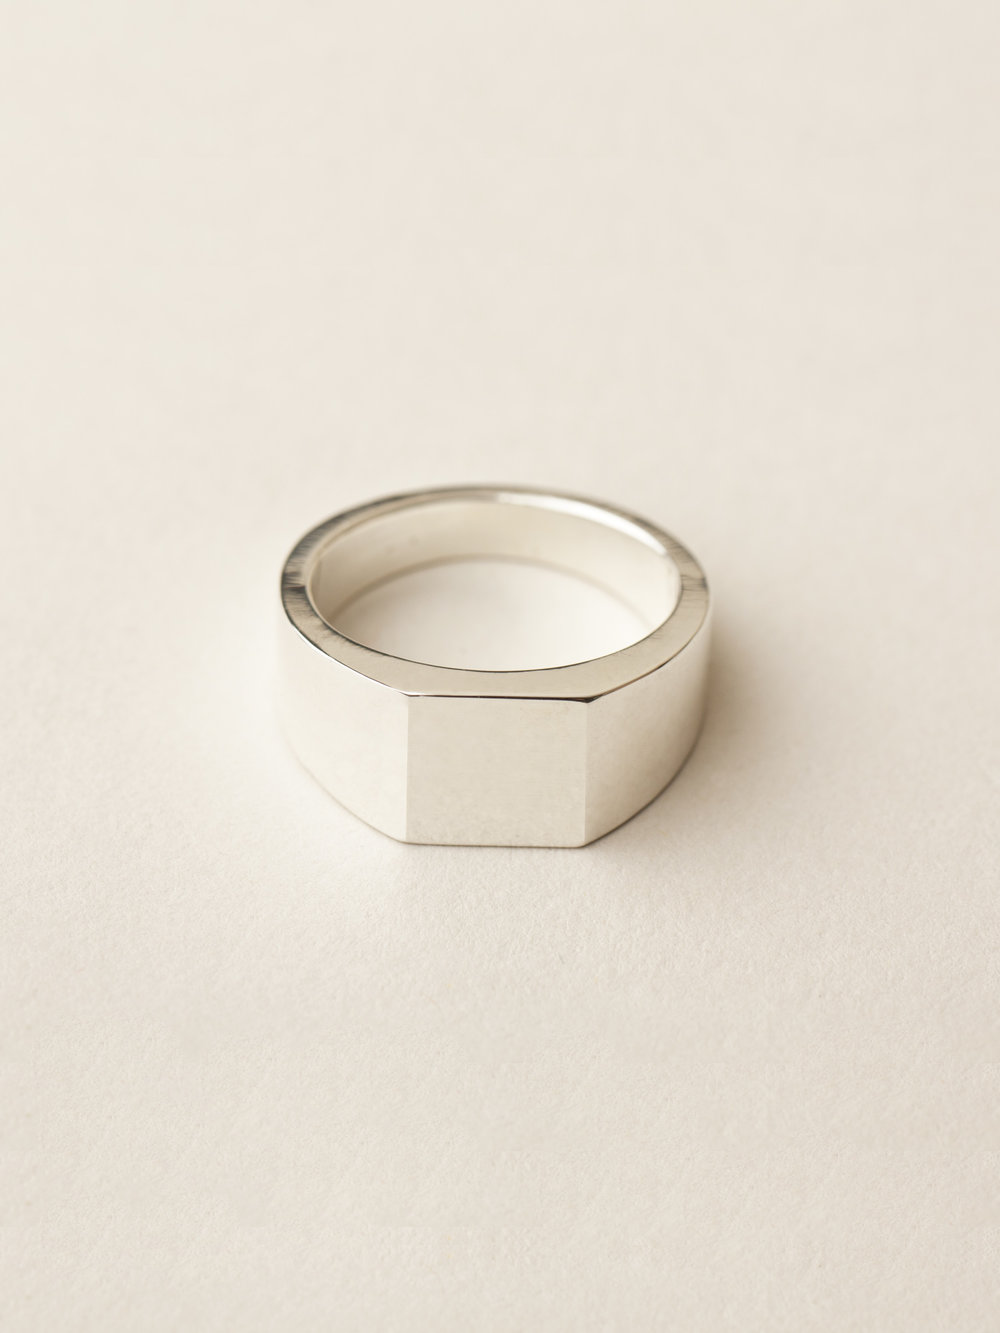 Siegelring Minima, groß quadratisch in 925 Silber Signet ring Minima, big square in sterling silver